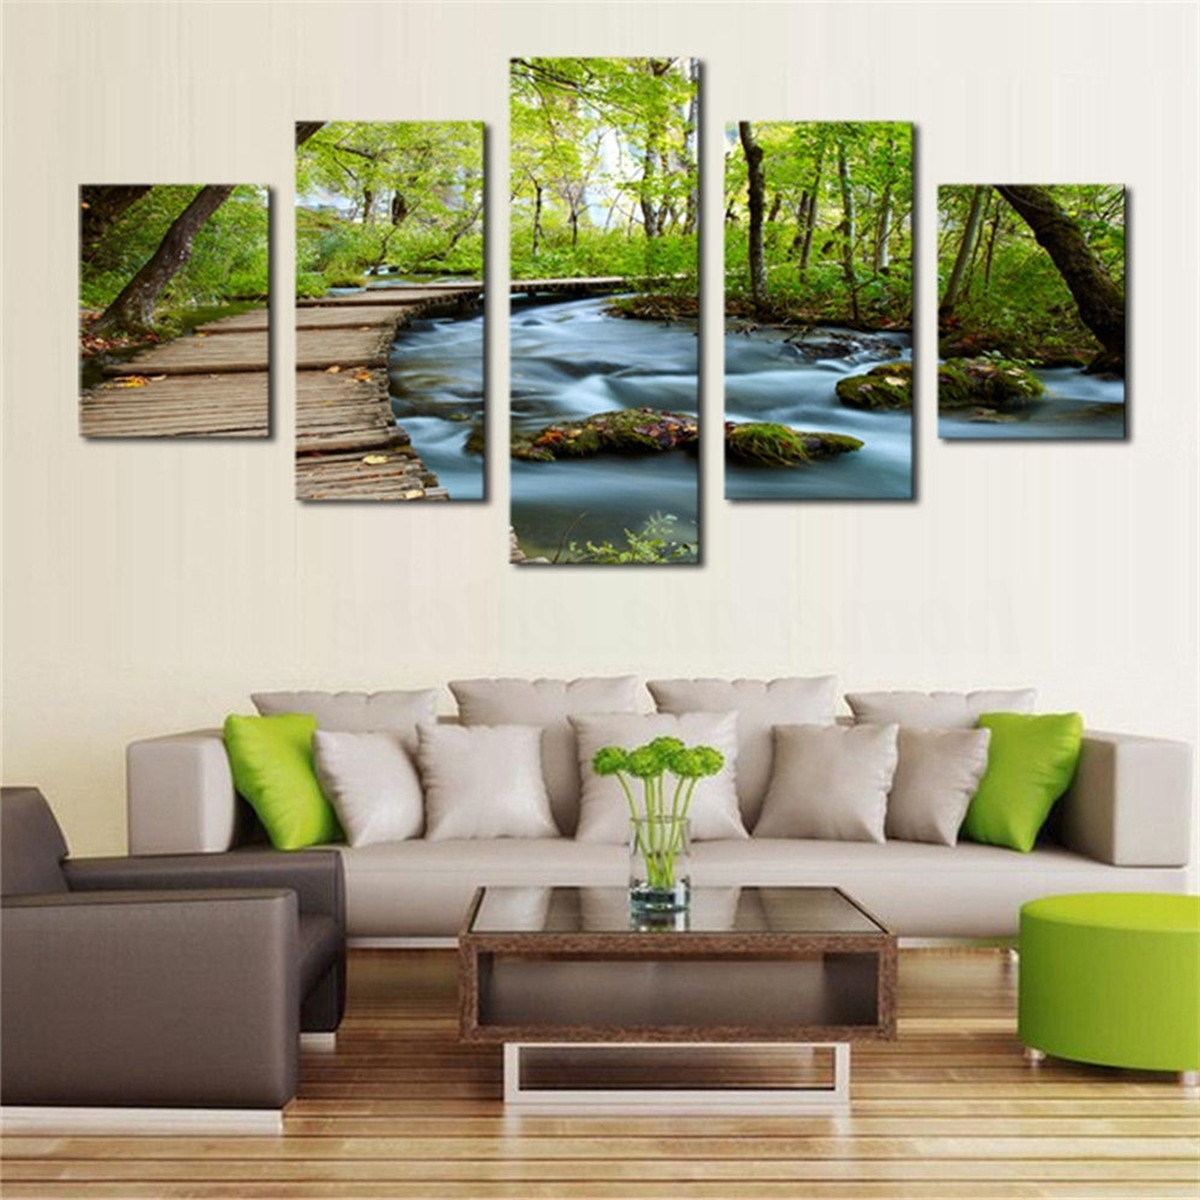 Widely Used Hd Canvas Print Modern Scenery Animal Wall Art Oil Painting Home With Regard To Animal Wall Art (View 15 of 15)